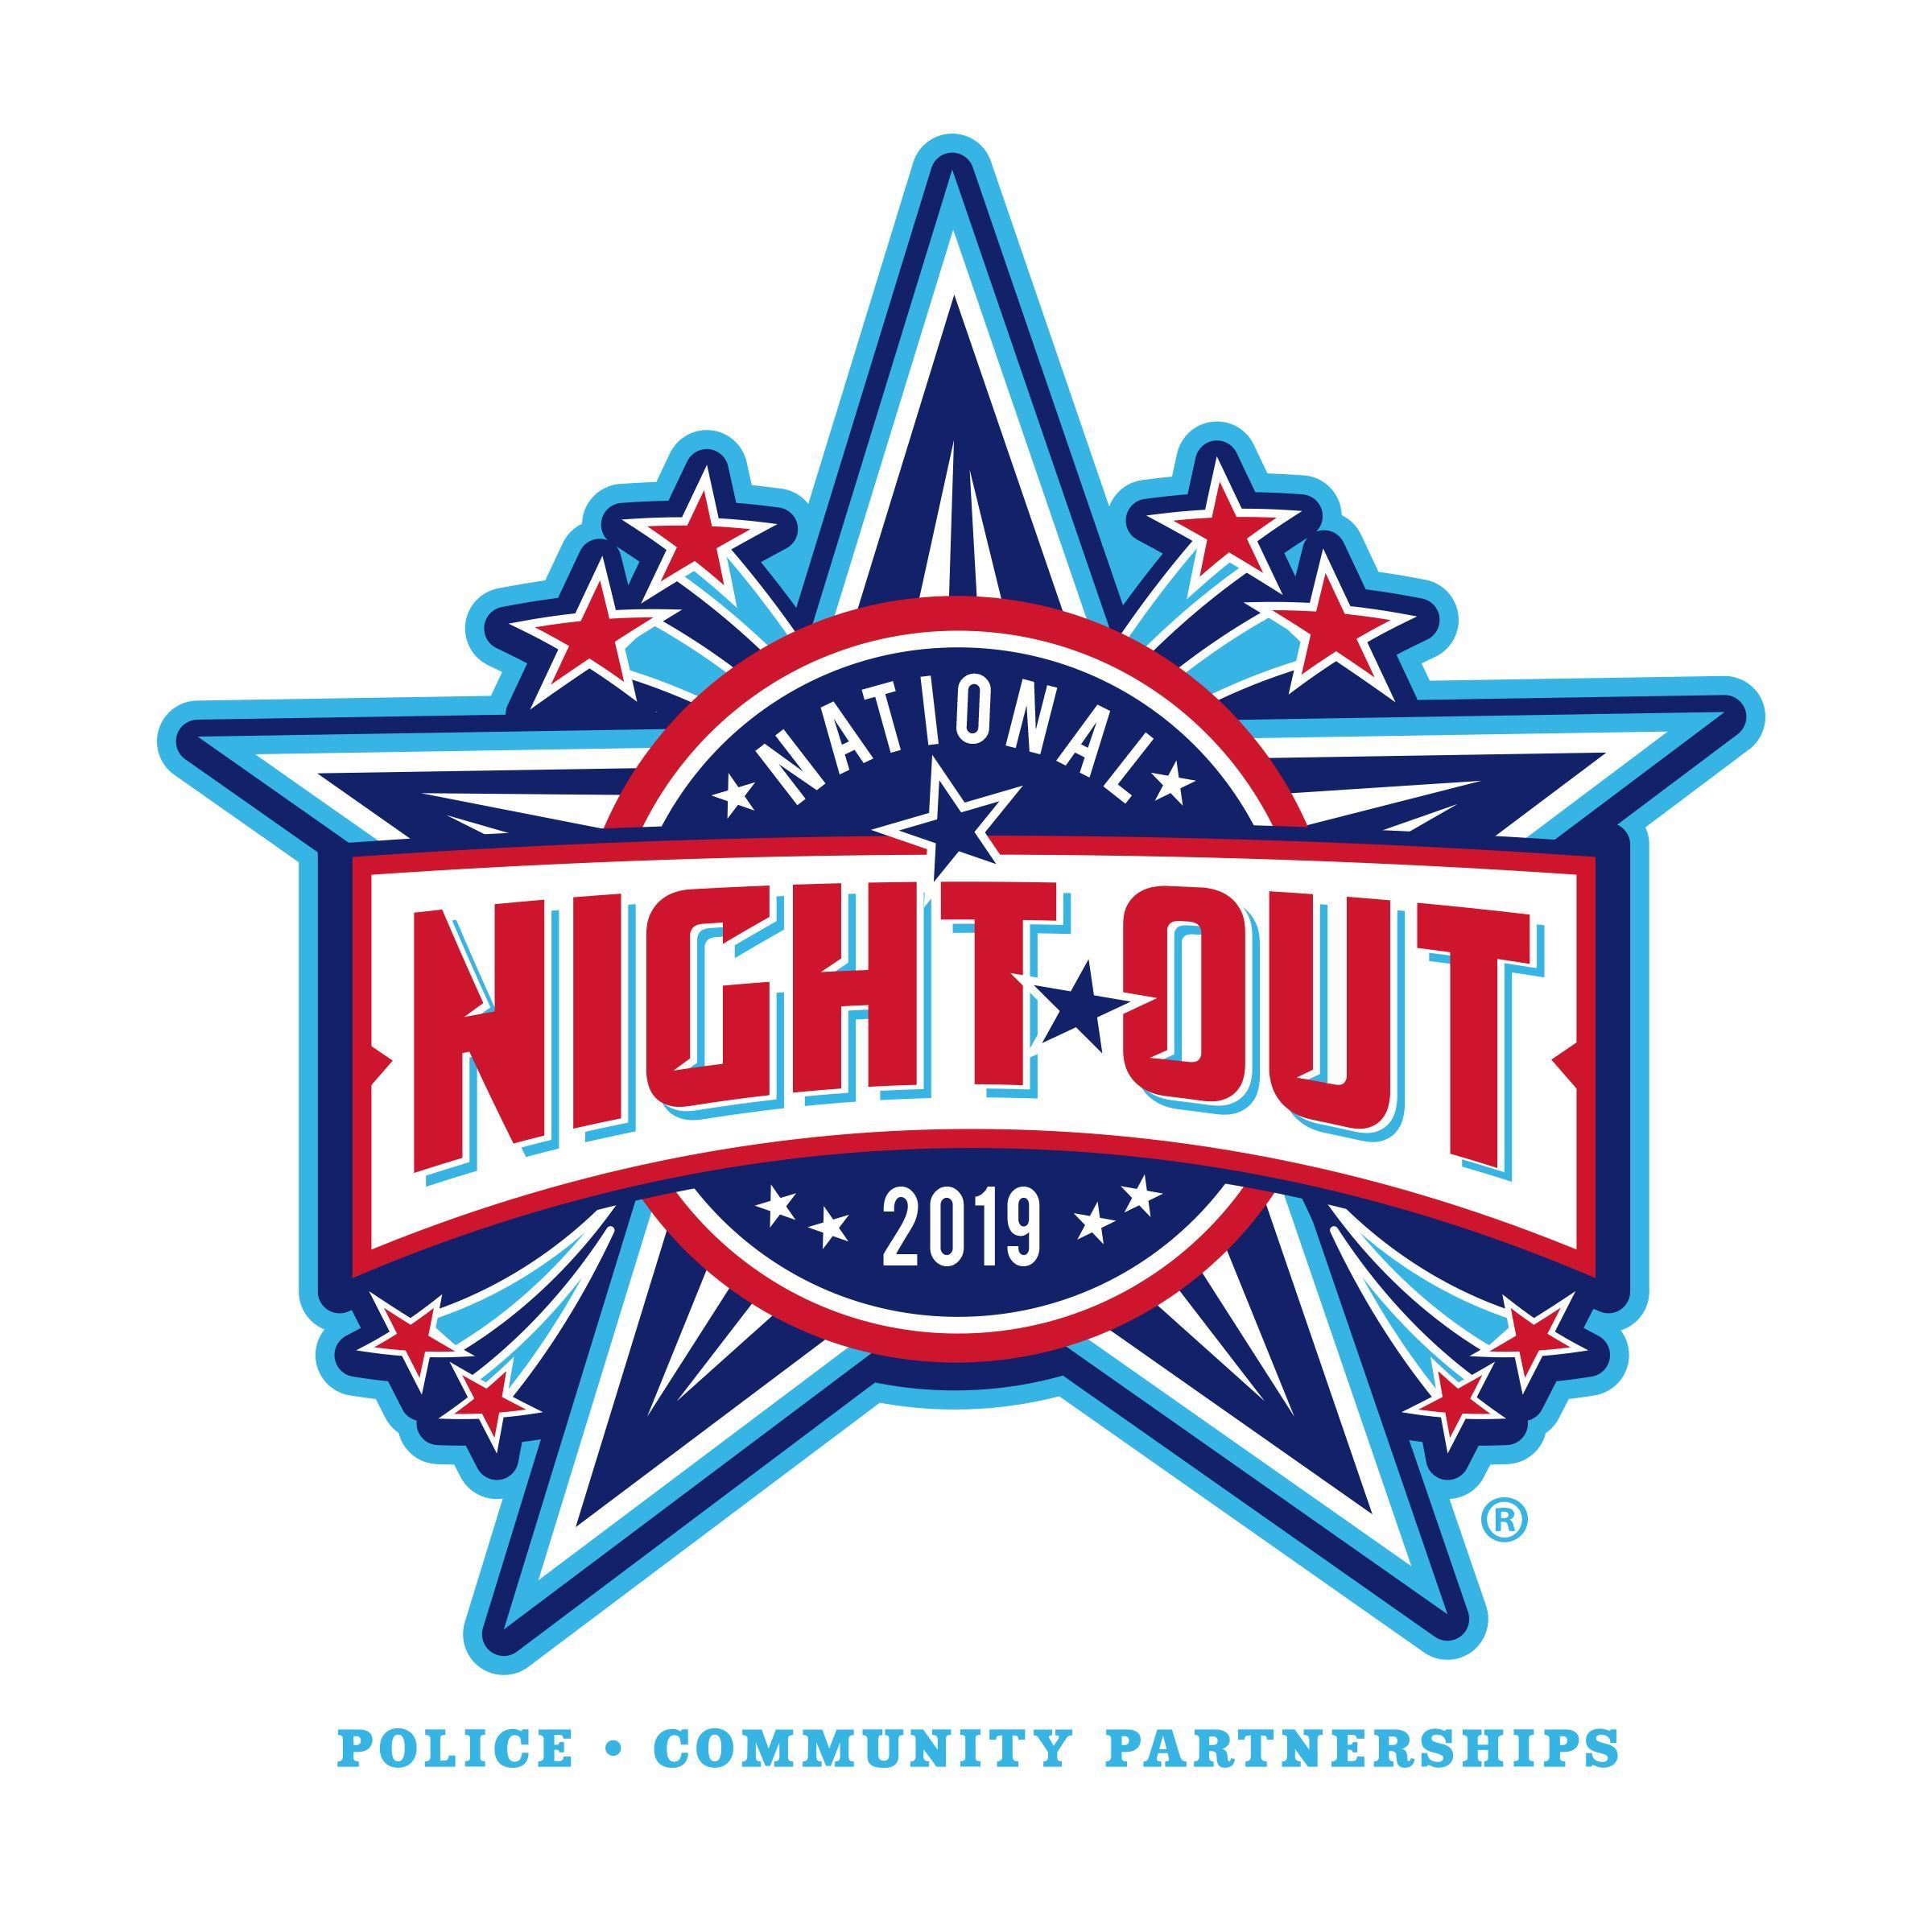 National Night Out 2019 graphic